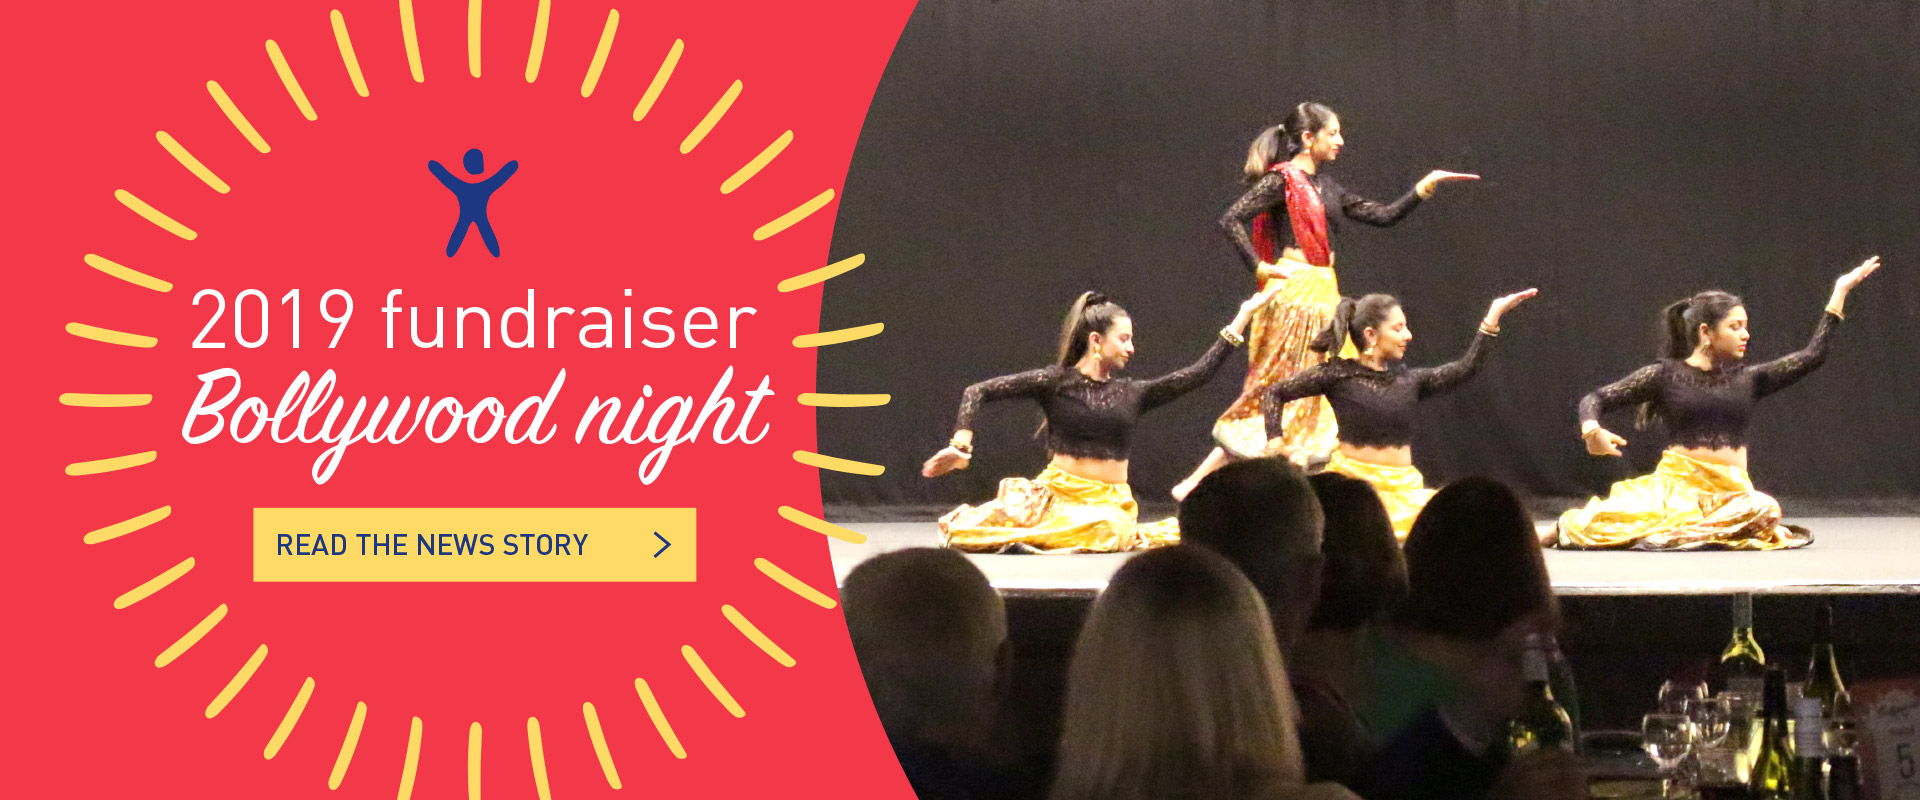 2019 Fundraiser - Bollywood night - Read the new story